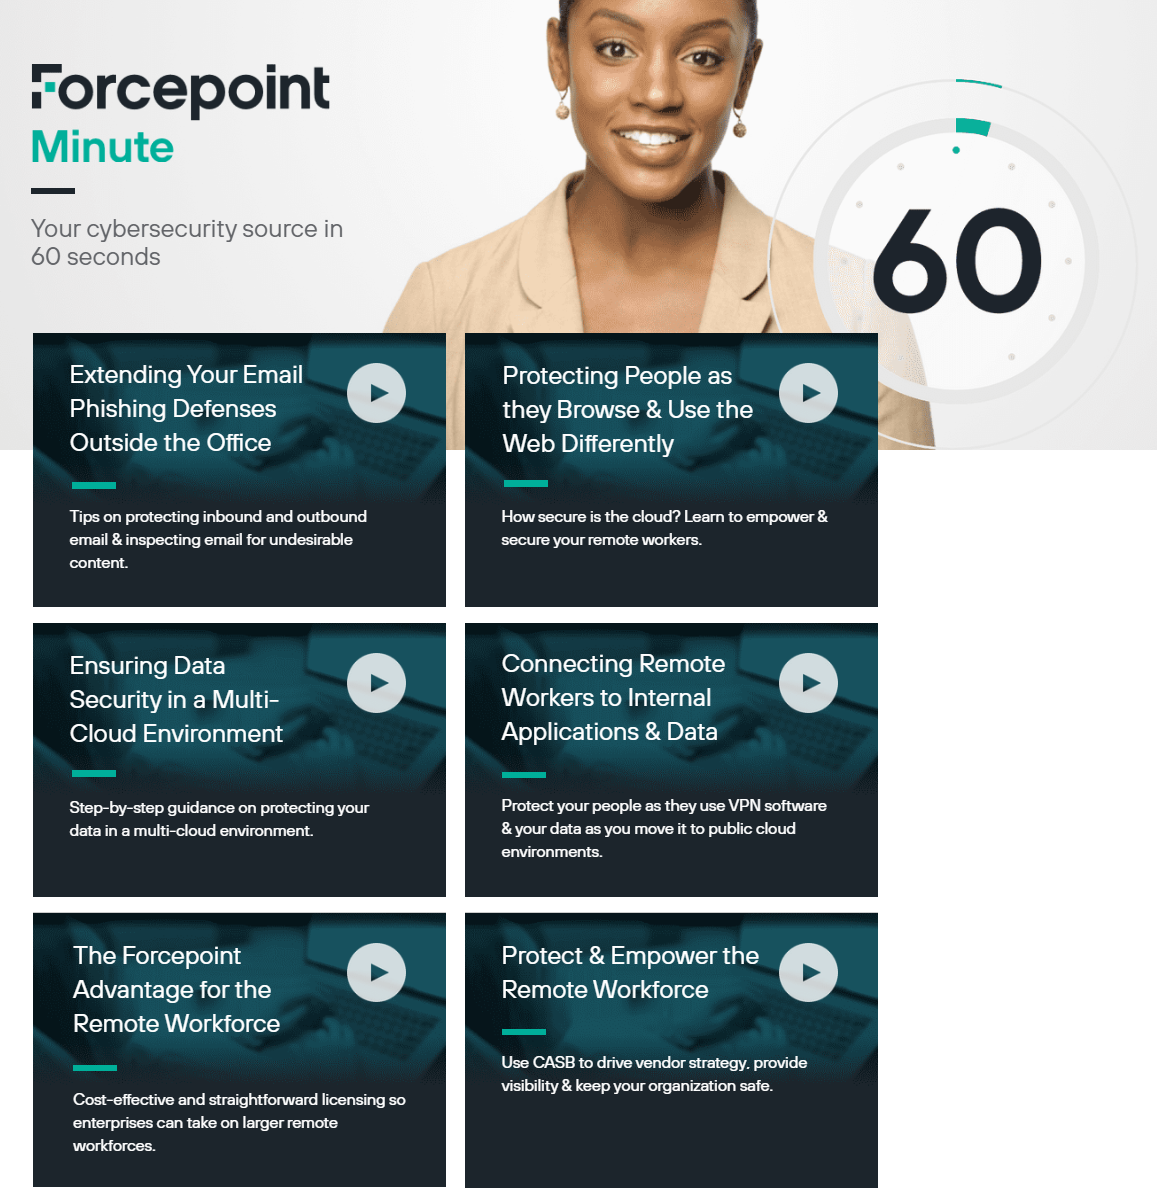 Forcepoint Minute video series on Forcepoint.com